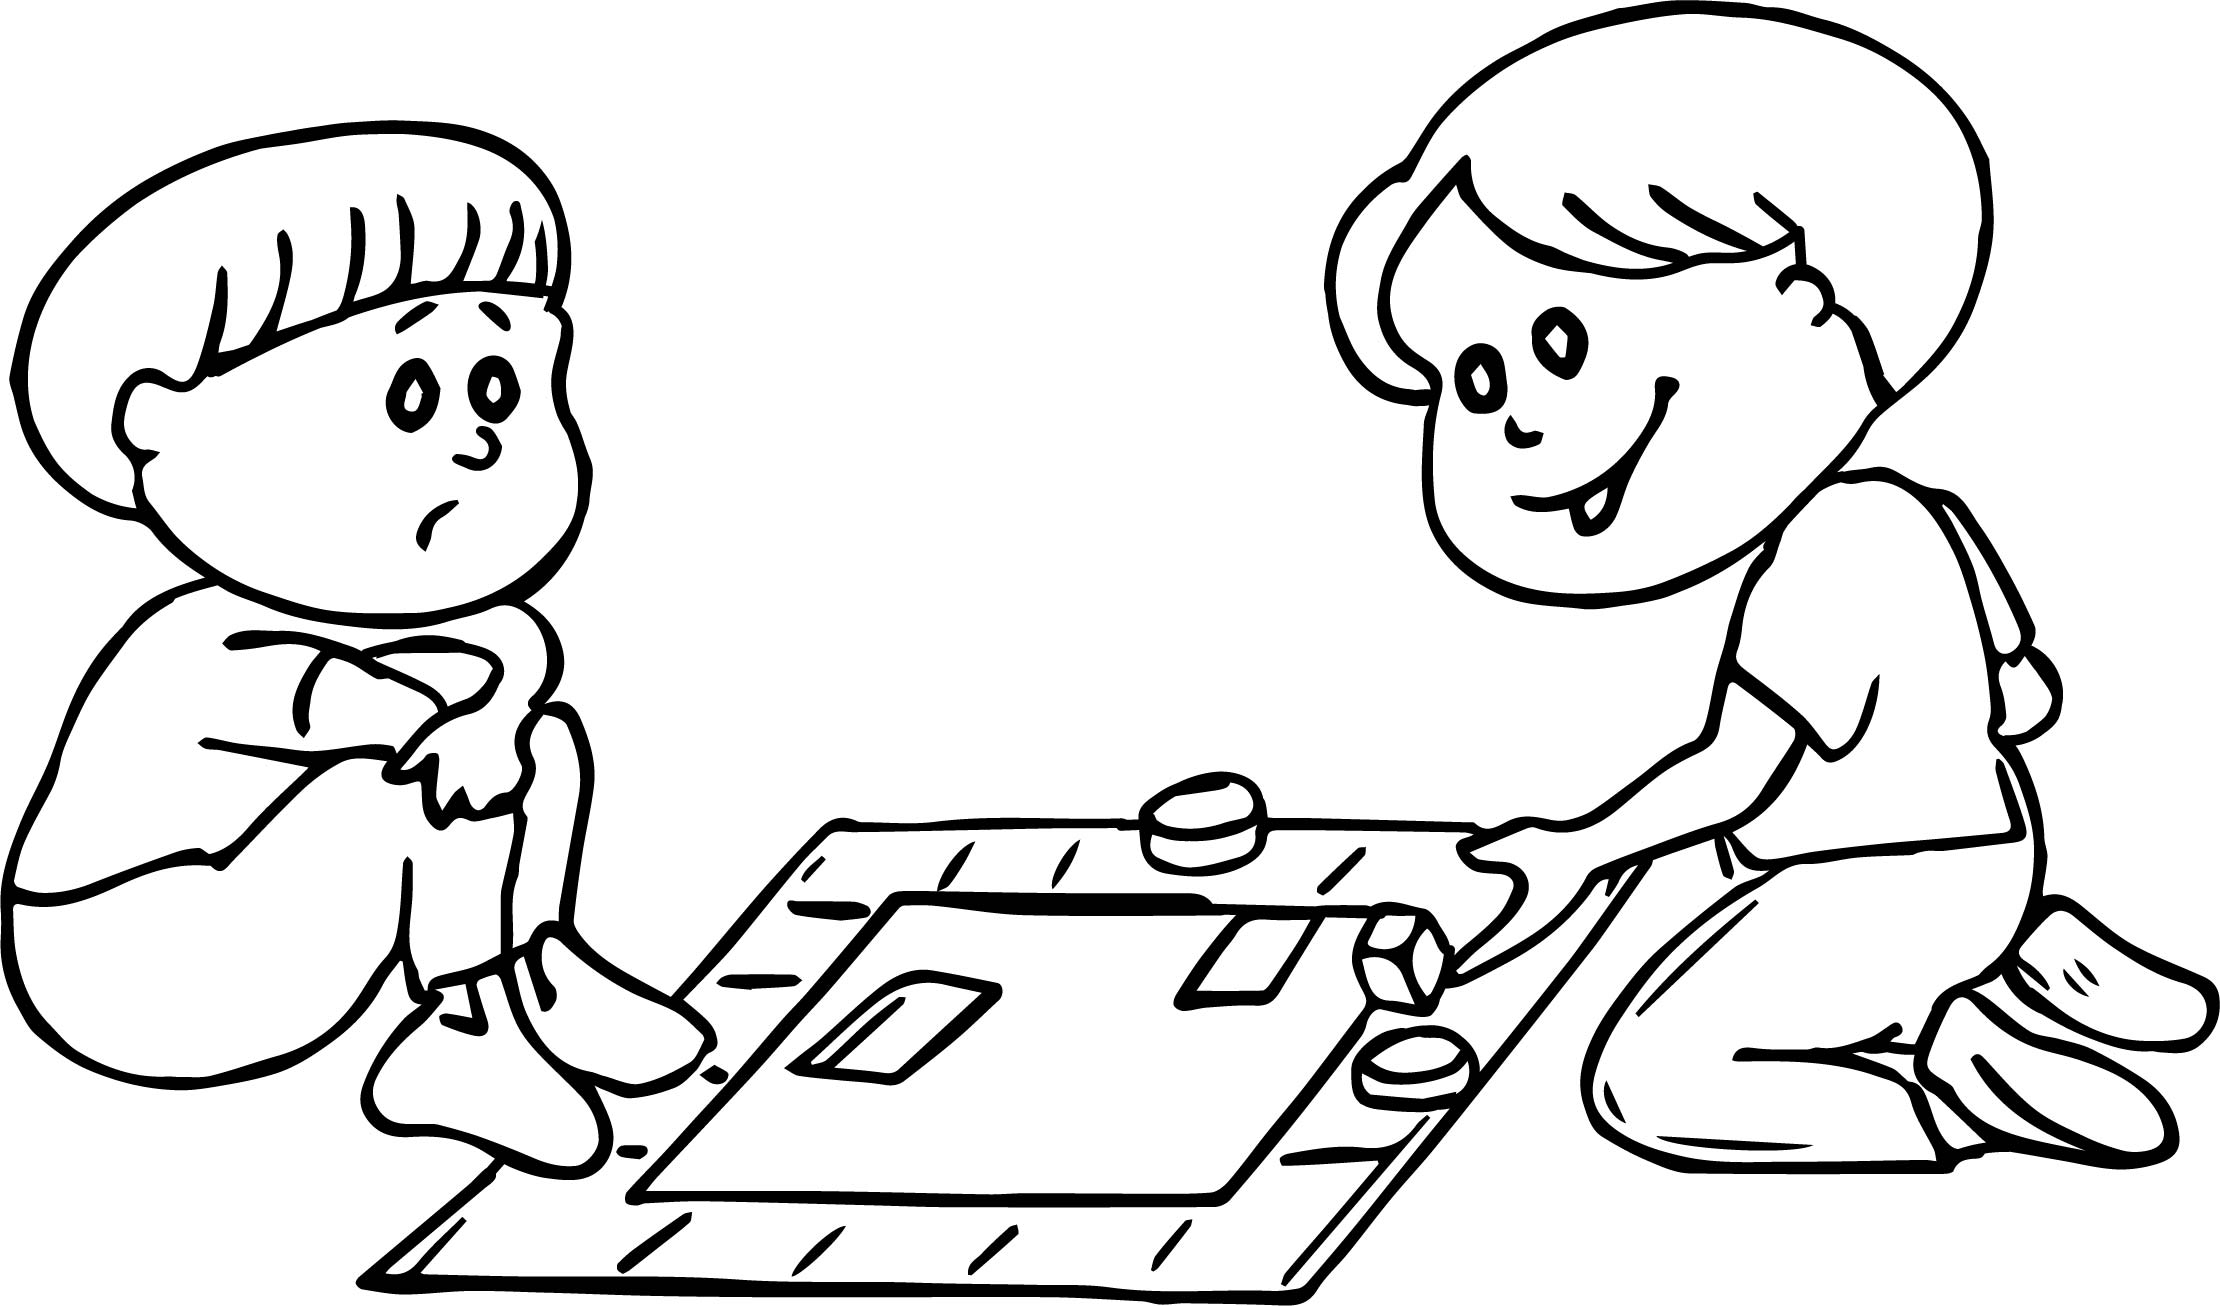 Board Game Loss Coloring Page